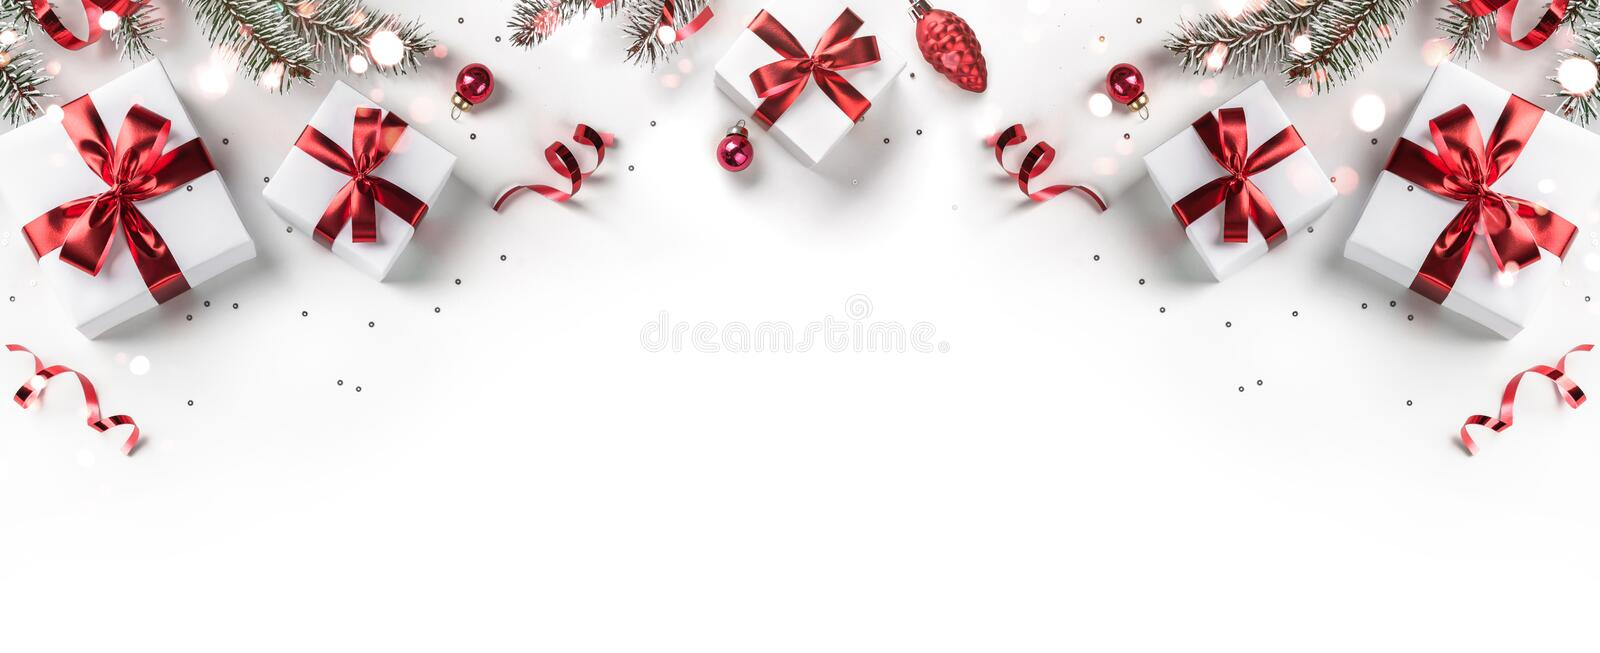 Merry Christmas card made of fir branches, gift boxes, red decoration, sparkles and confetti on white background. Xmas stock image